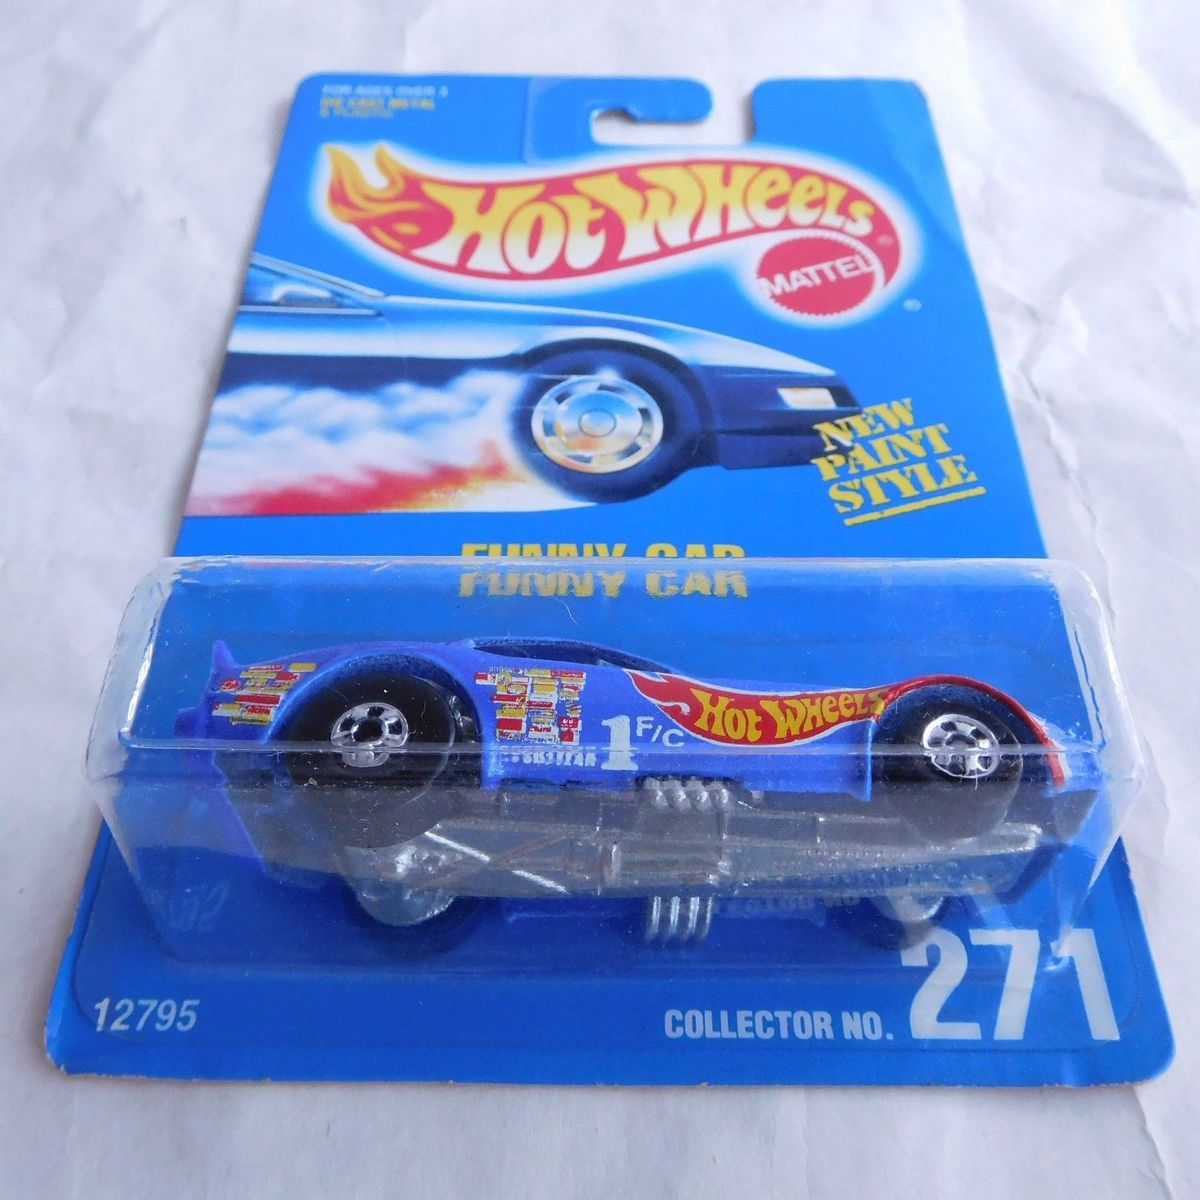 Funny Car Collector No. 271 From 1995 - $2,800